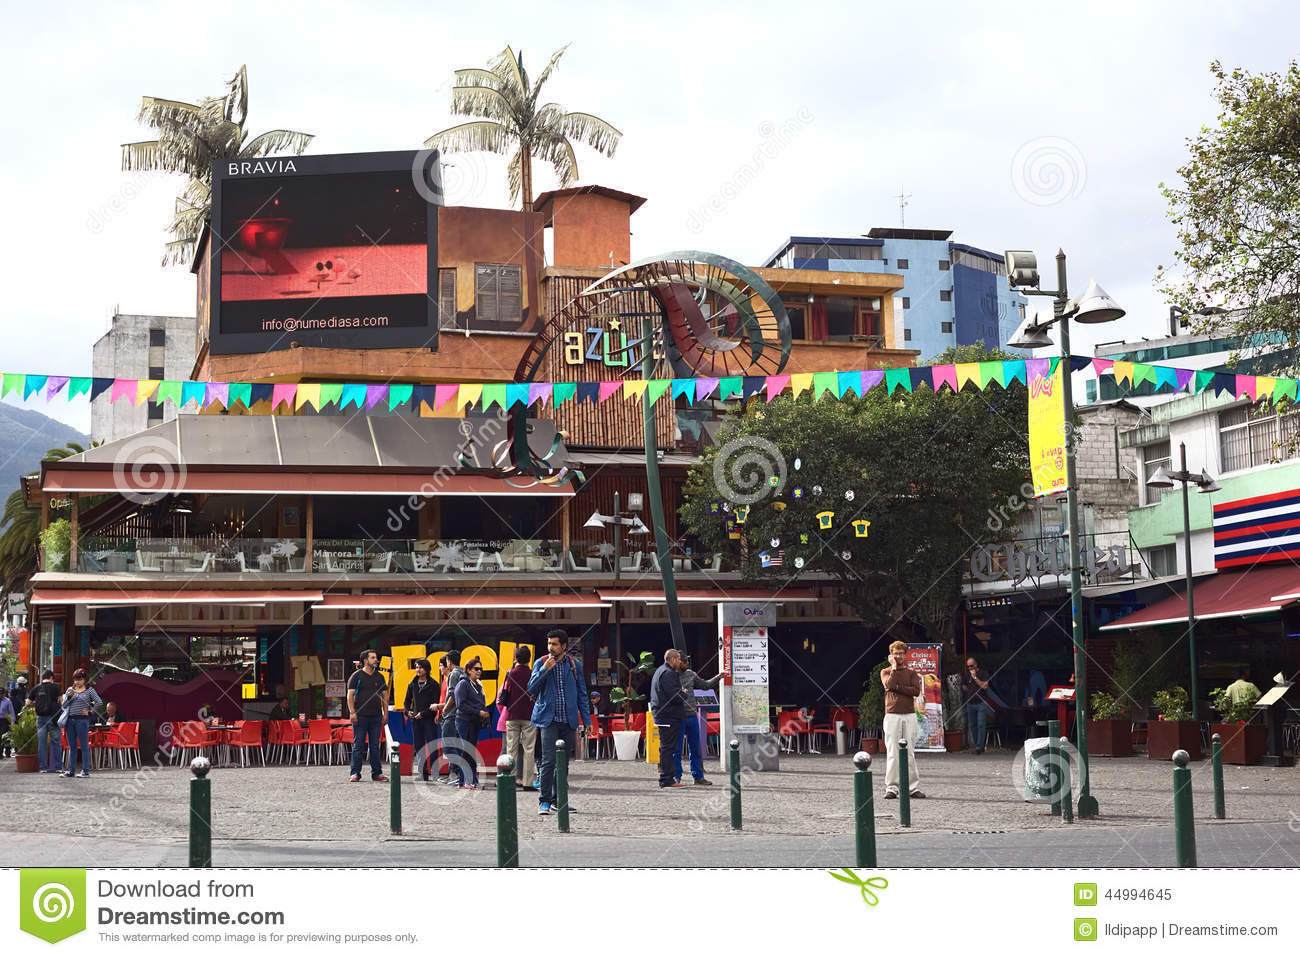 Plaza Foch In La Mariscal Tourist District In Quito  : plaza foch la mariscal tourist district quito ecuador august unidentified people standing front azuca latin bistro 44994645 from www.dreamstime.com size 1300 x 957 jpeg 231kB